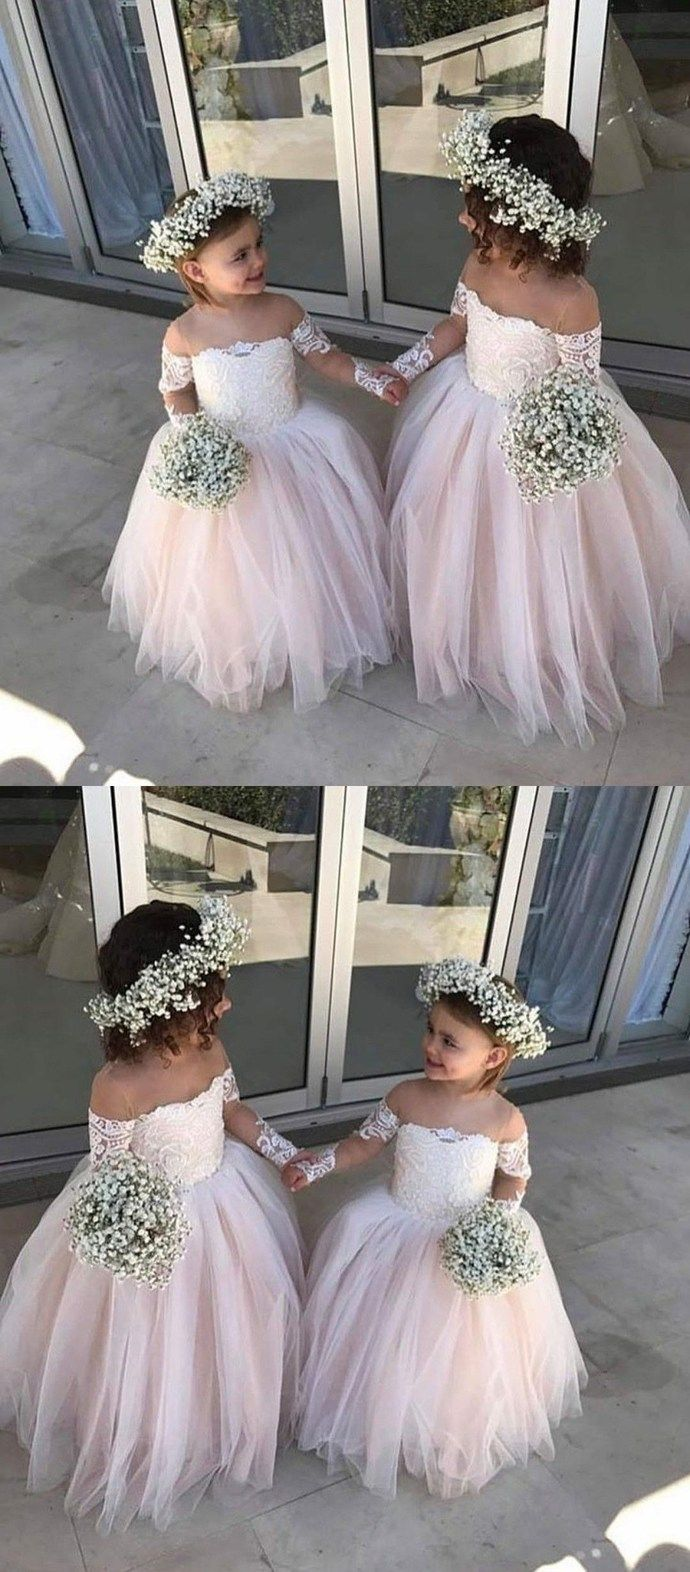 8f5630e9d Adorable Flower Girl Dresses For Weddings , Little Girls Off the ...